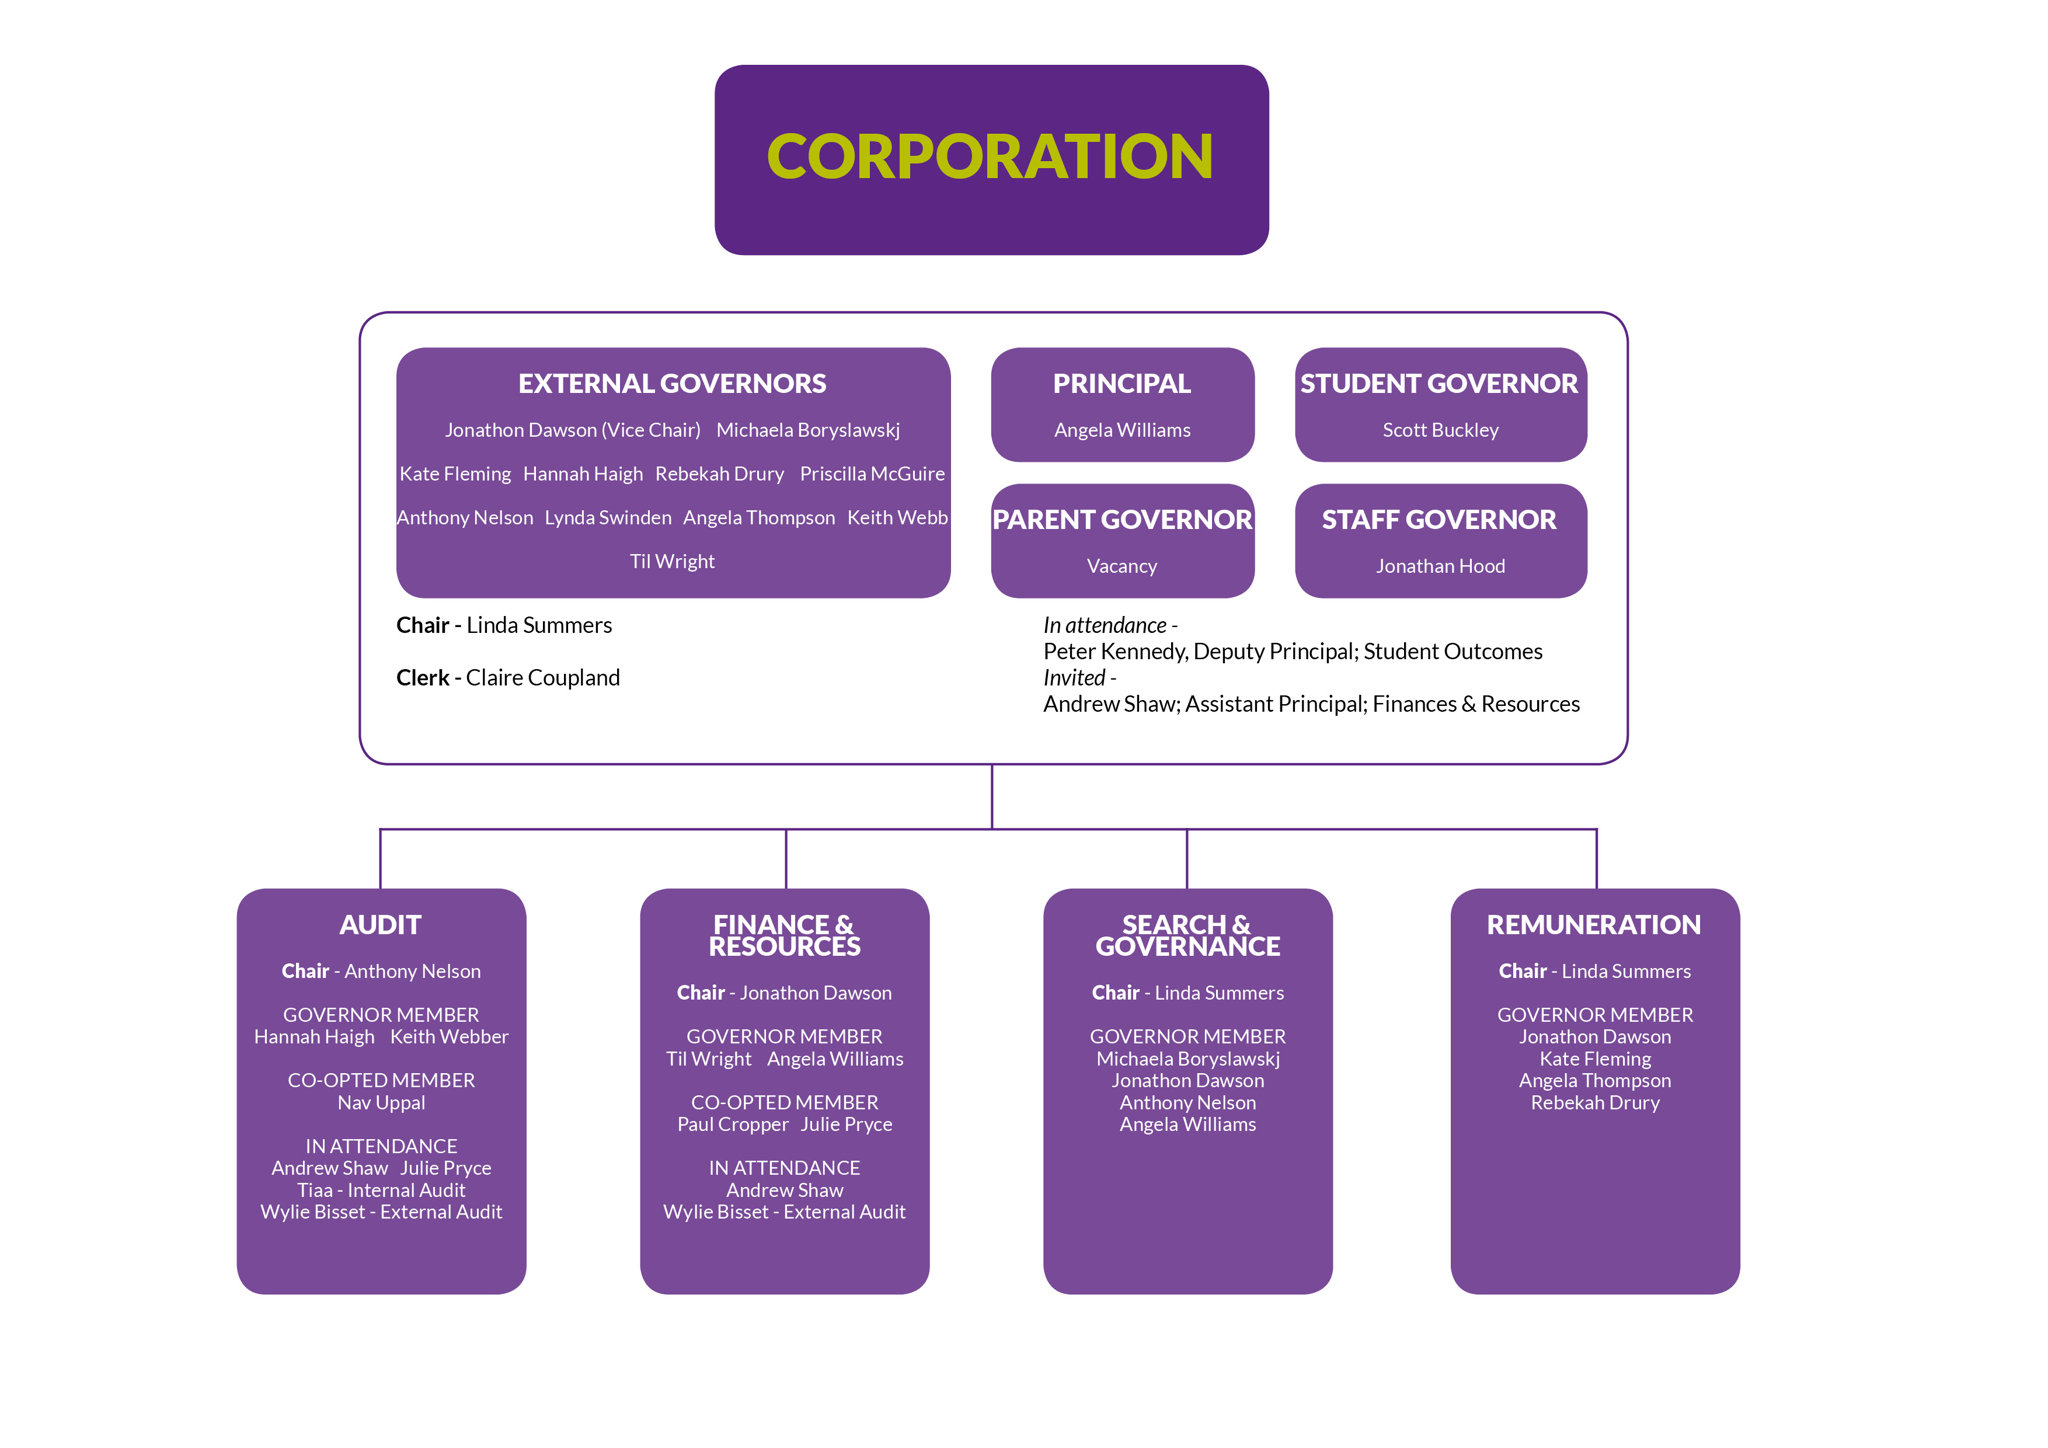 Image of Corporation Structure